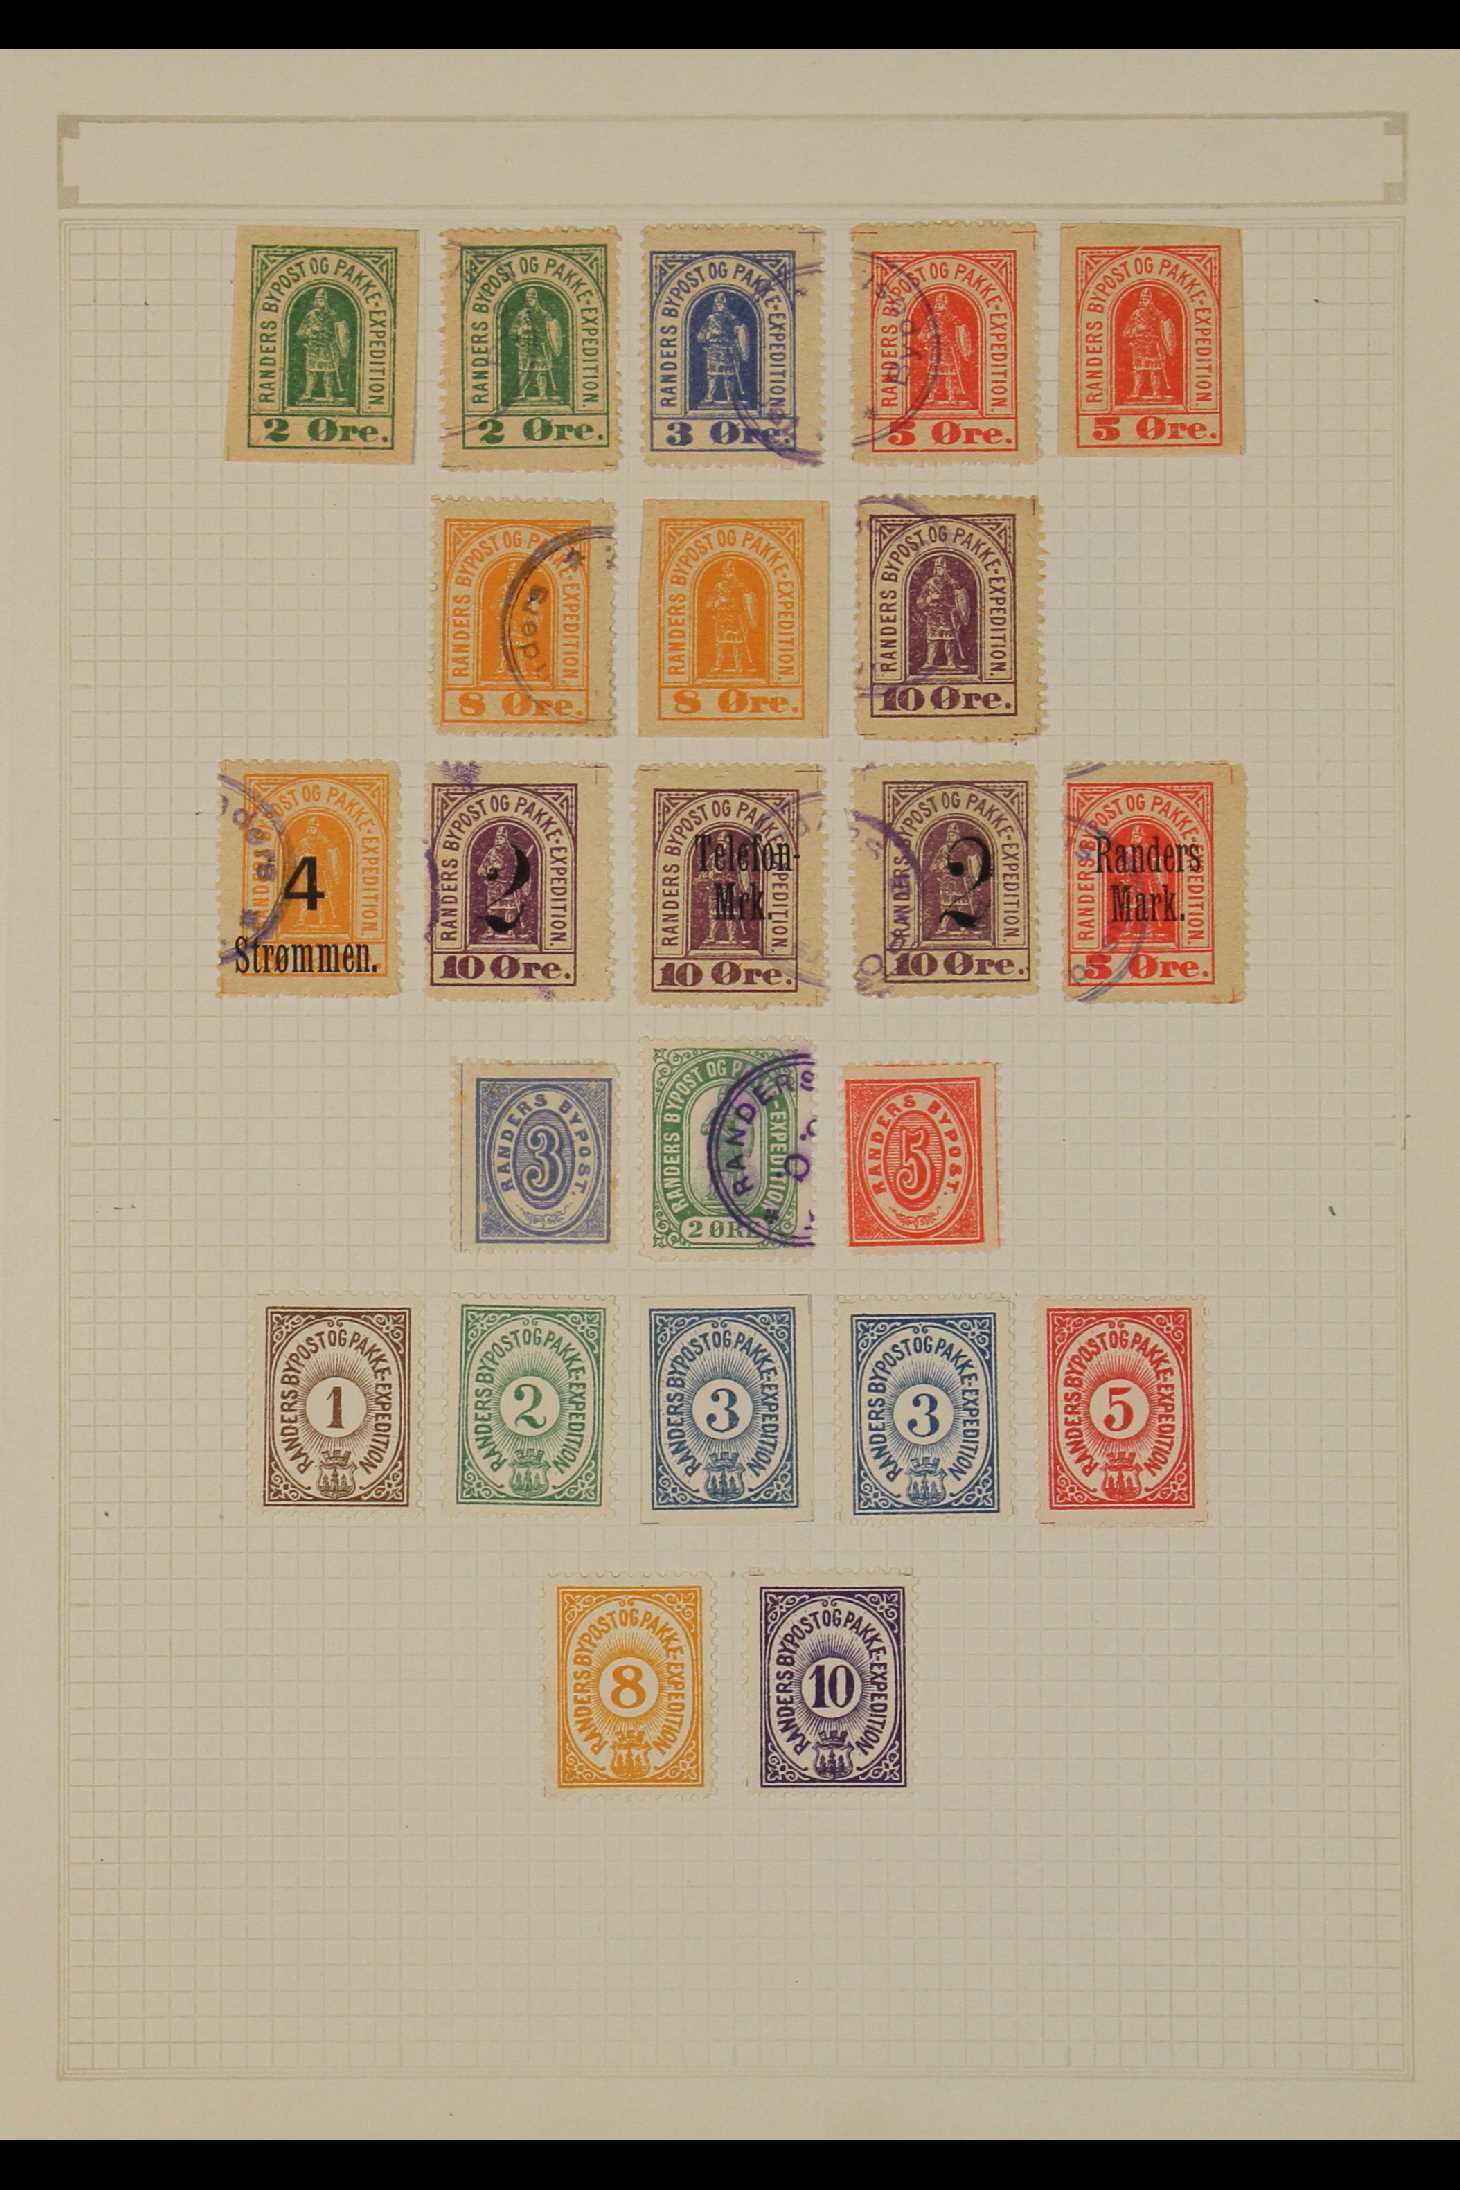 DENMARK LOCAL POST STAMPS - RANDERS 1885-89. MINT & USED ranges incl. inverted surcharges, - Image 3 of 4